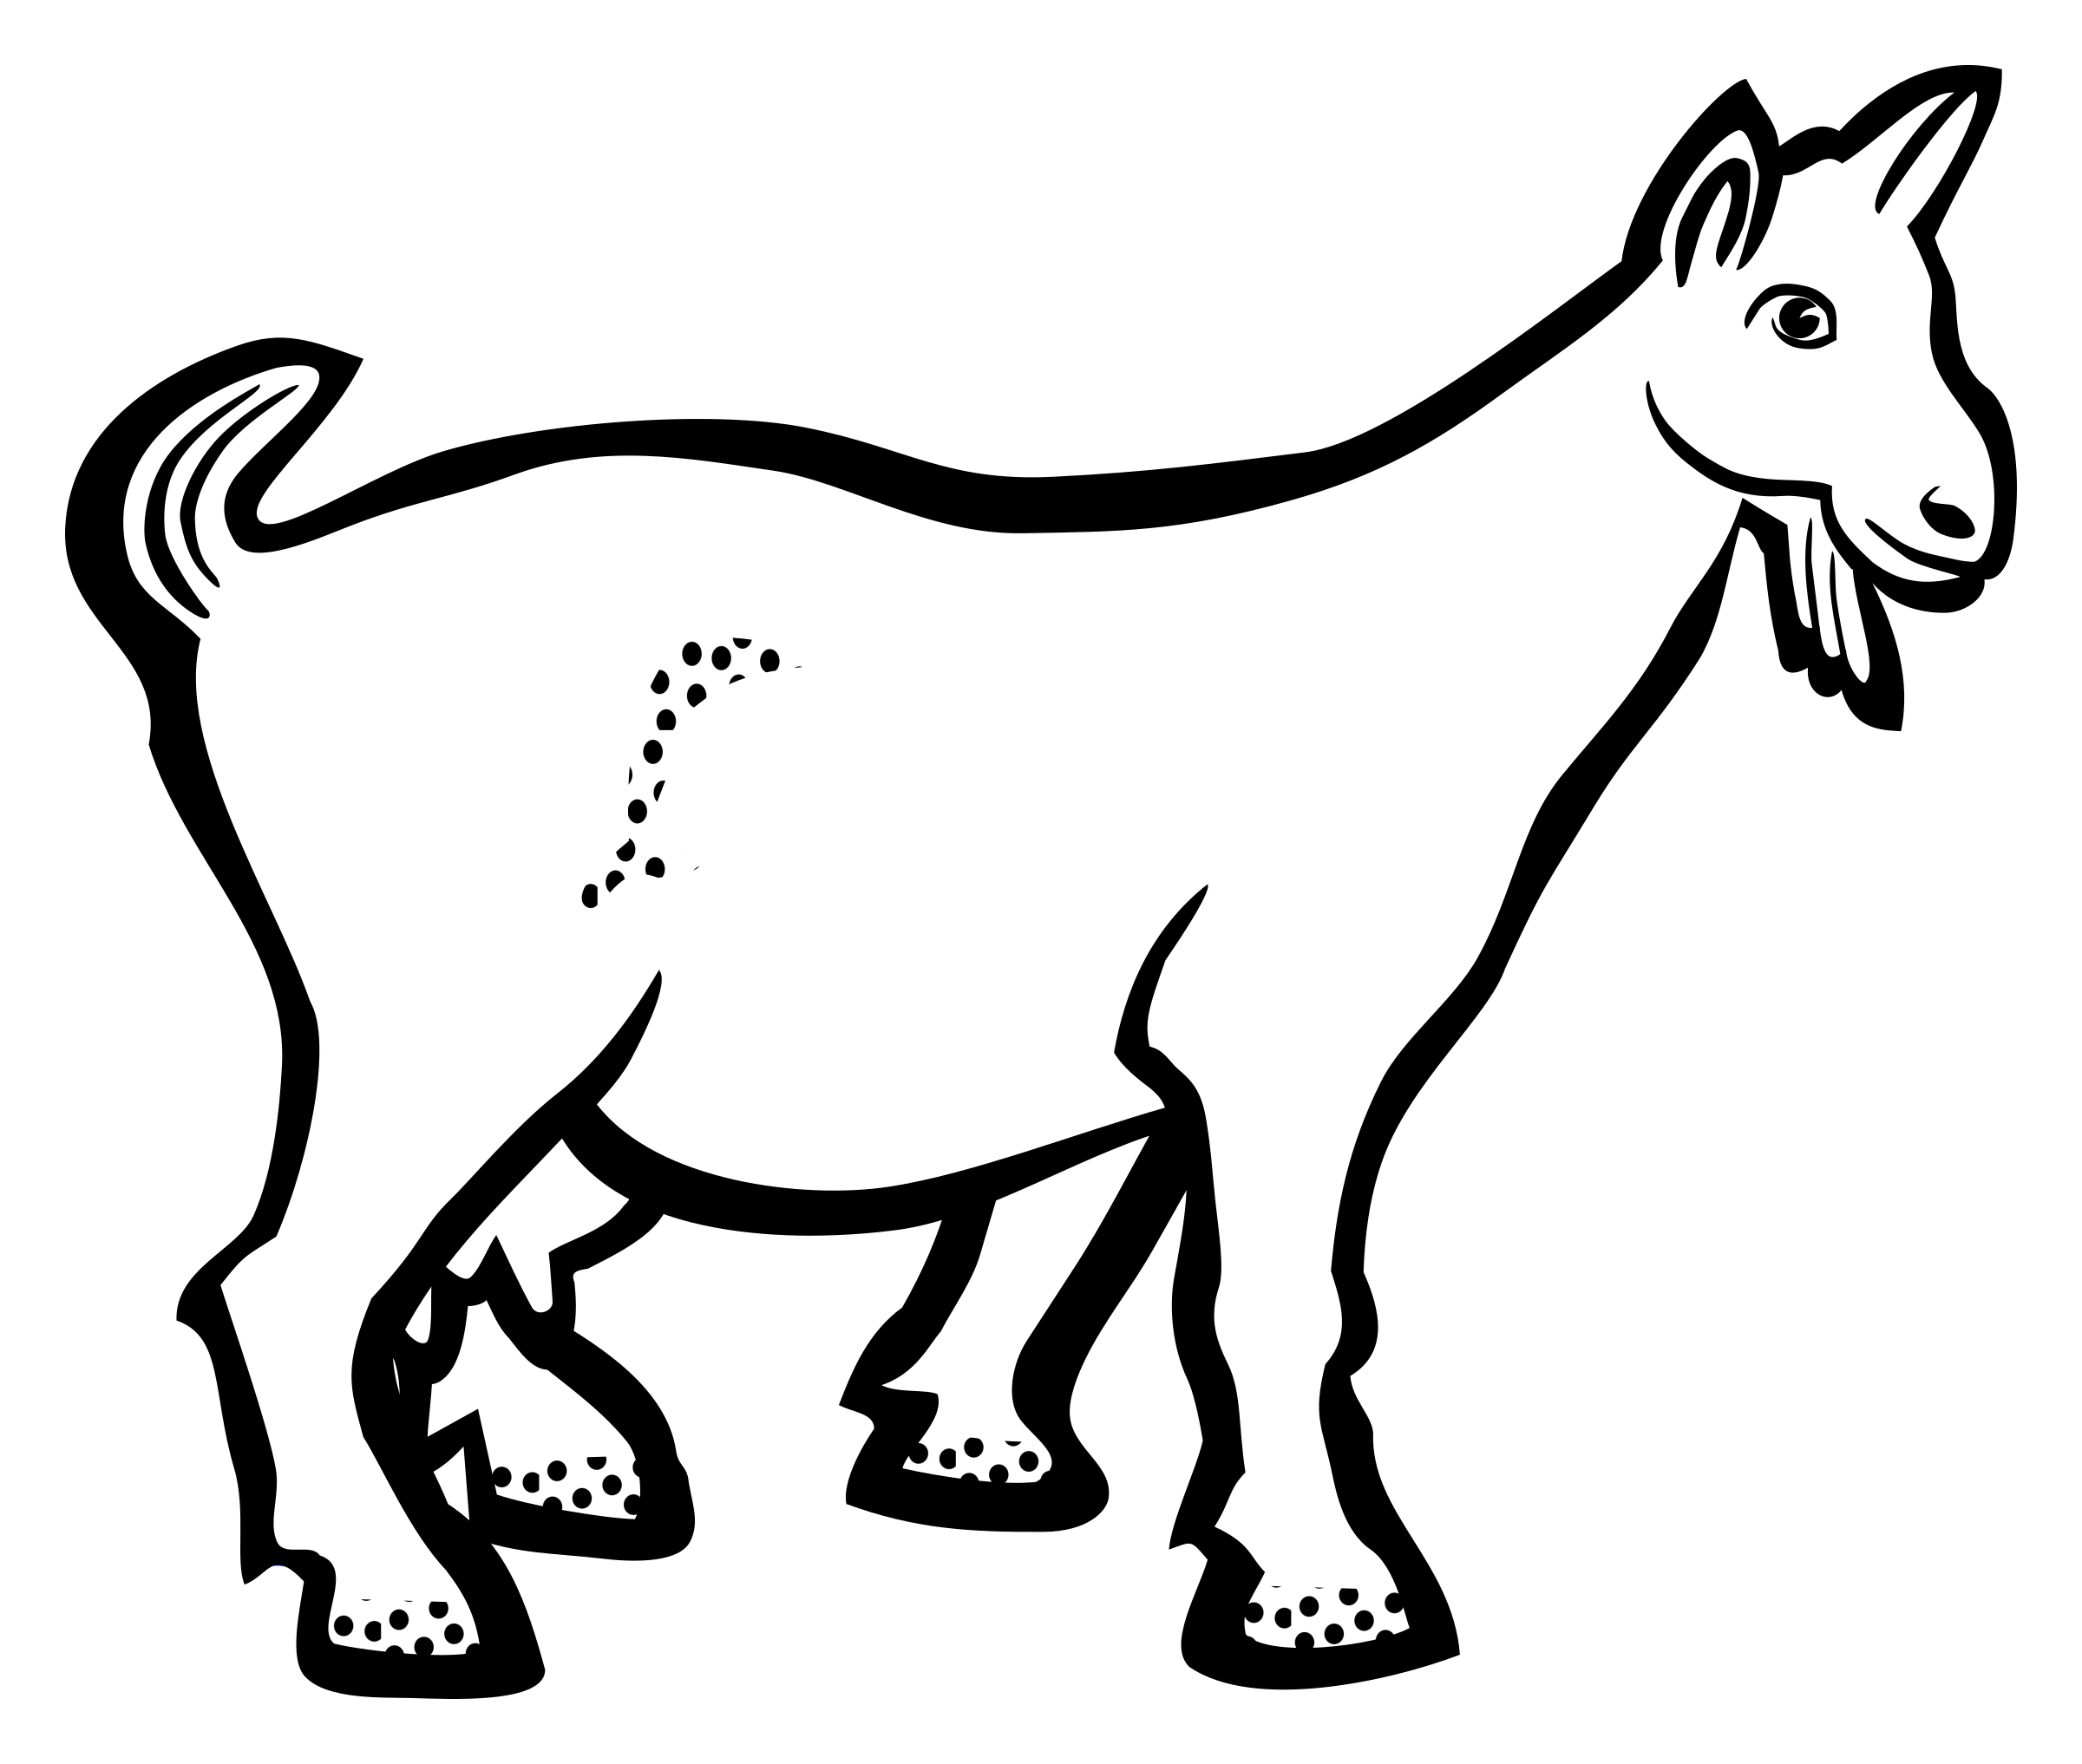 goat black and white outline clipart best